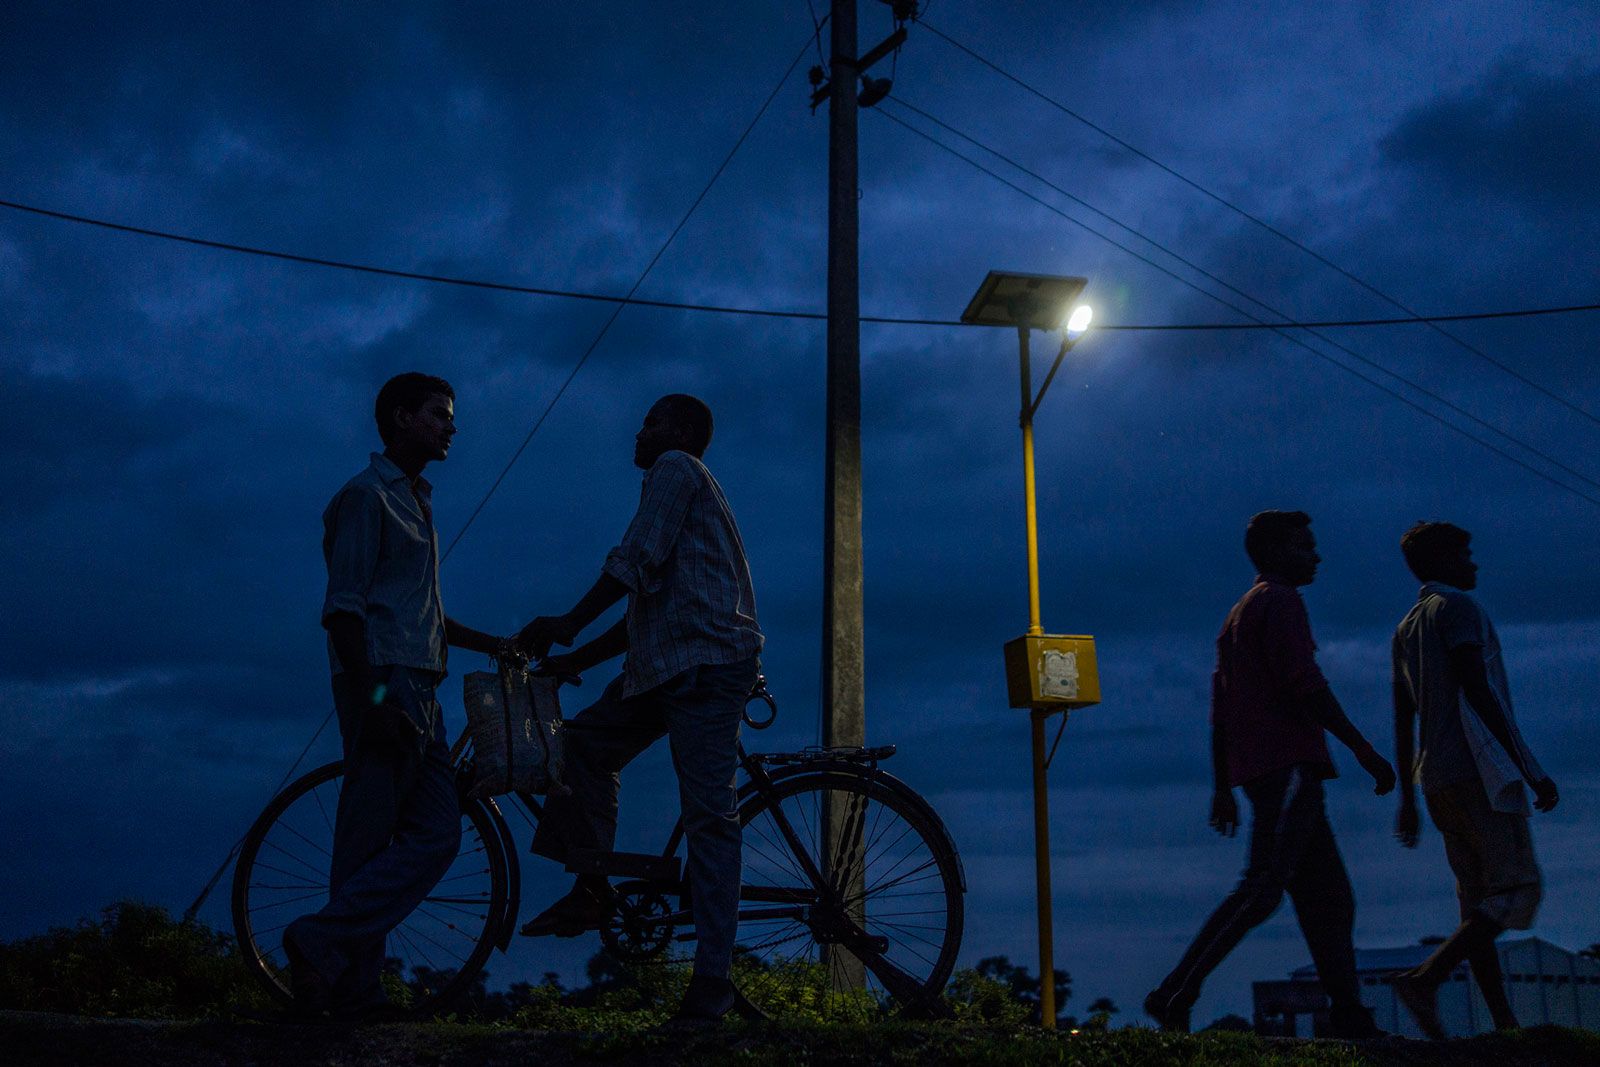 People walk past a light powered by energy from a solar-power microgrid at night in the village of Dharnai in Jehanabad, Bihar, India